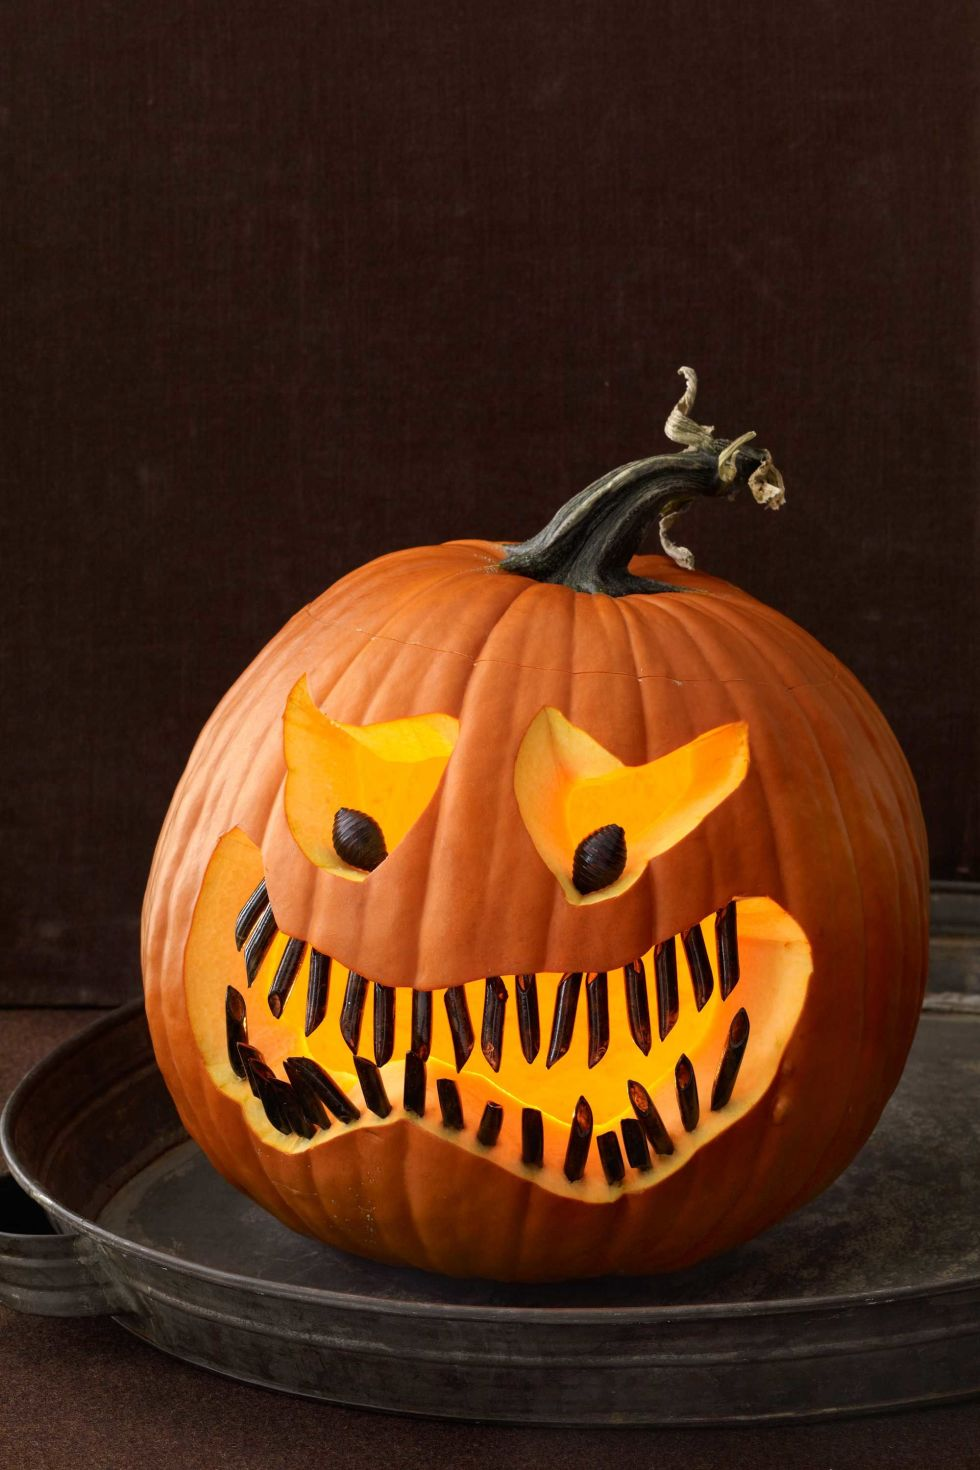 65 best pumpkin carving ideas halloween 2017 creative jack o lantern designs - How To Make Halloween Lanterns